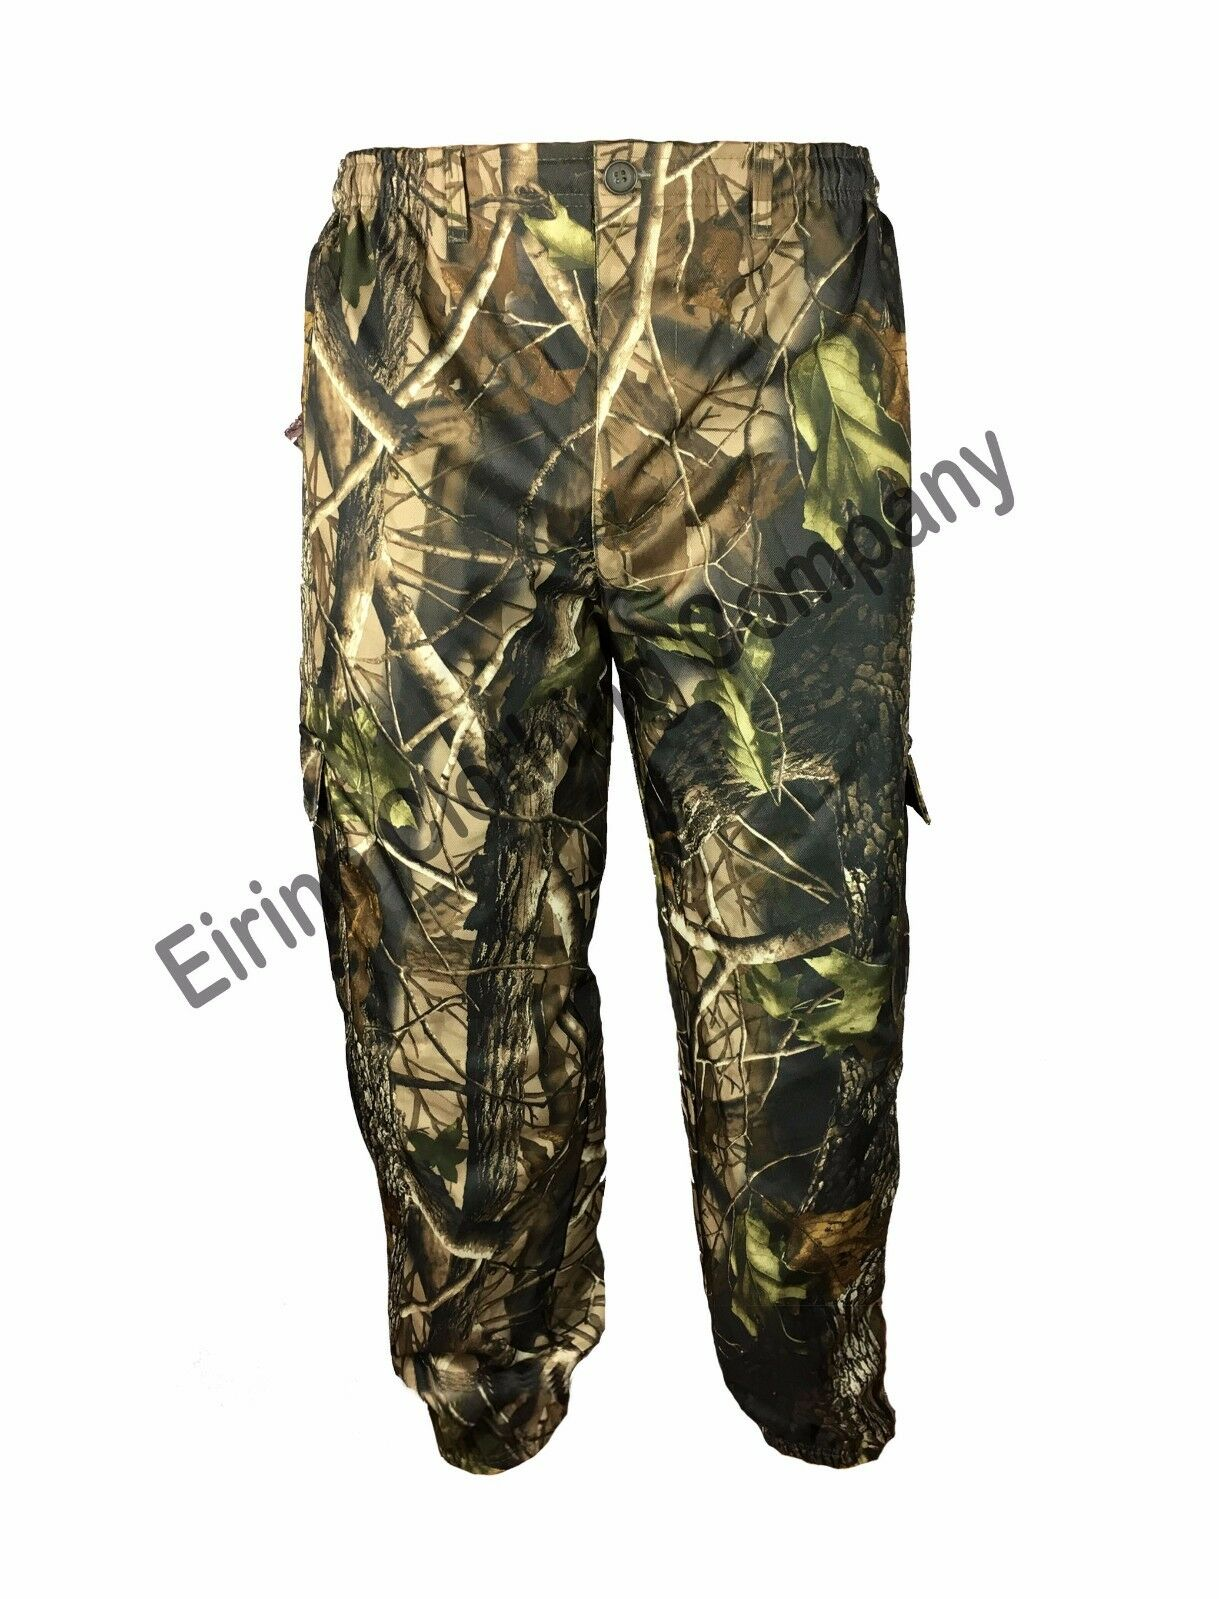 REALTREE Camouflage Waterproof Trousers Hunting Over Trousers Shooting Fishing